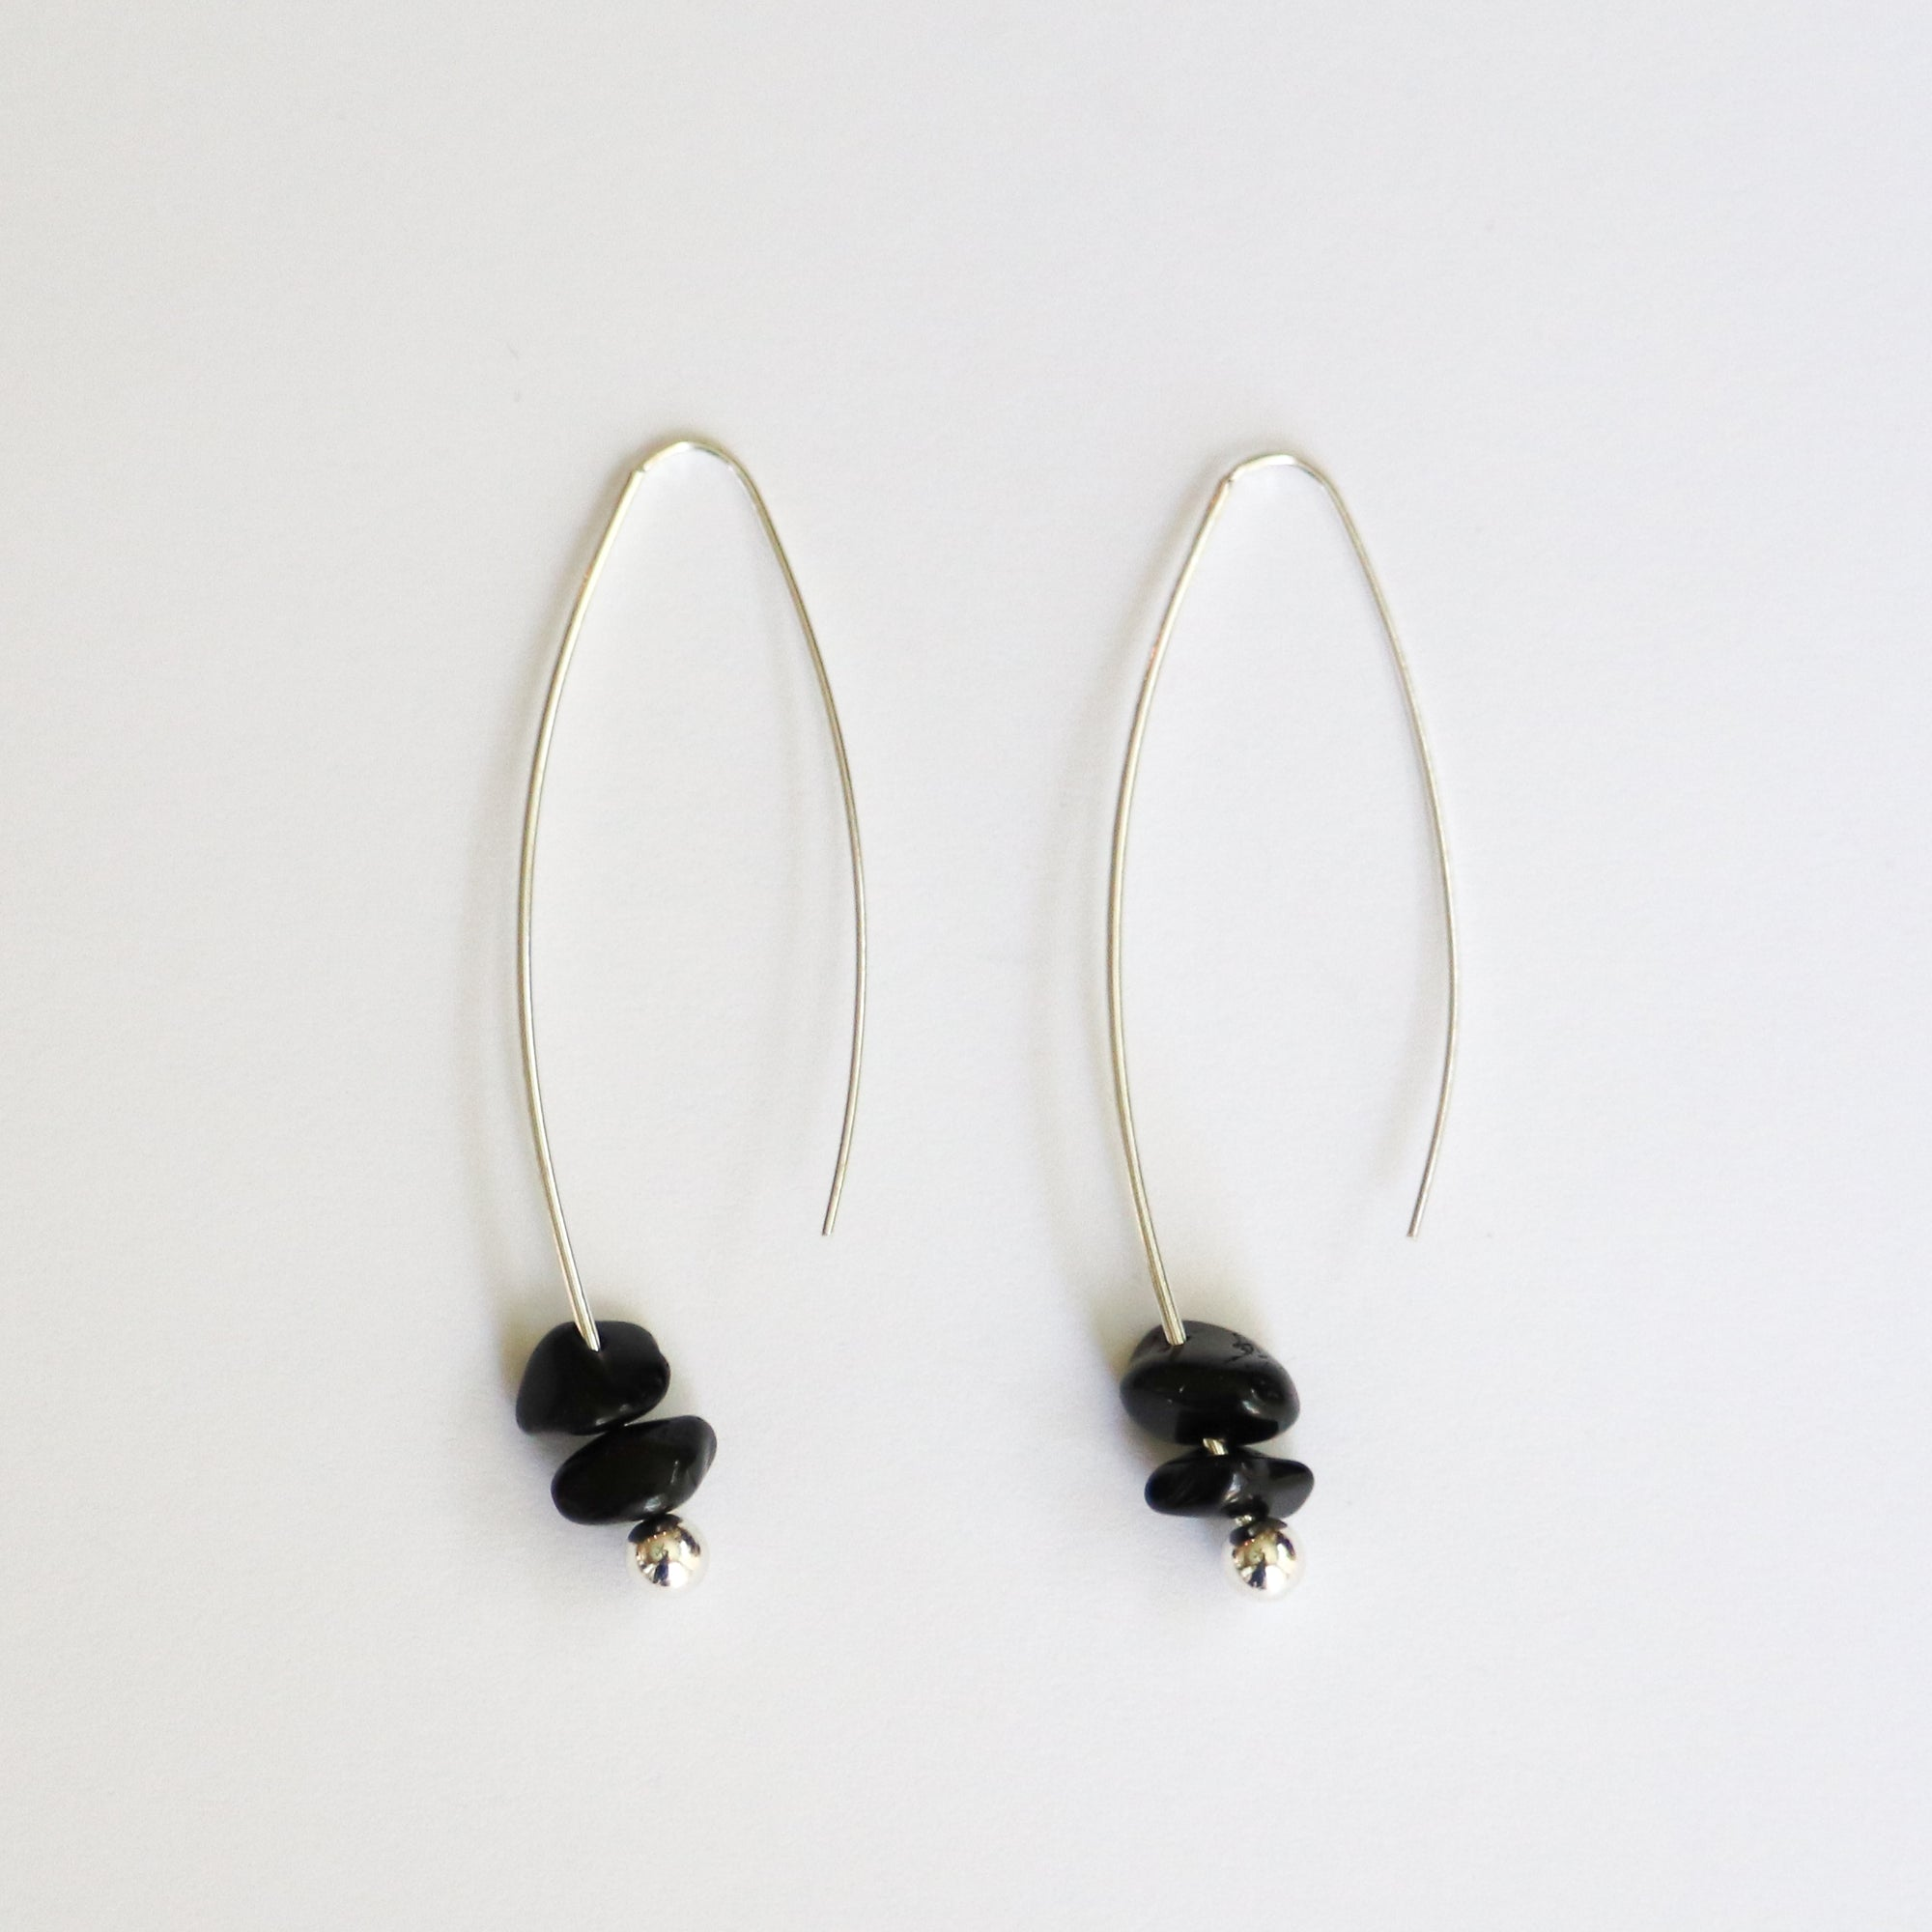 Obsidian Sterling Silver Drop Earrings